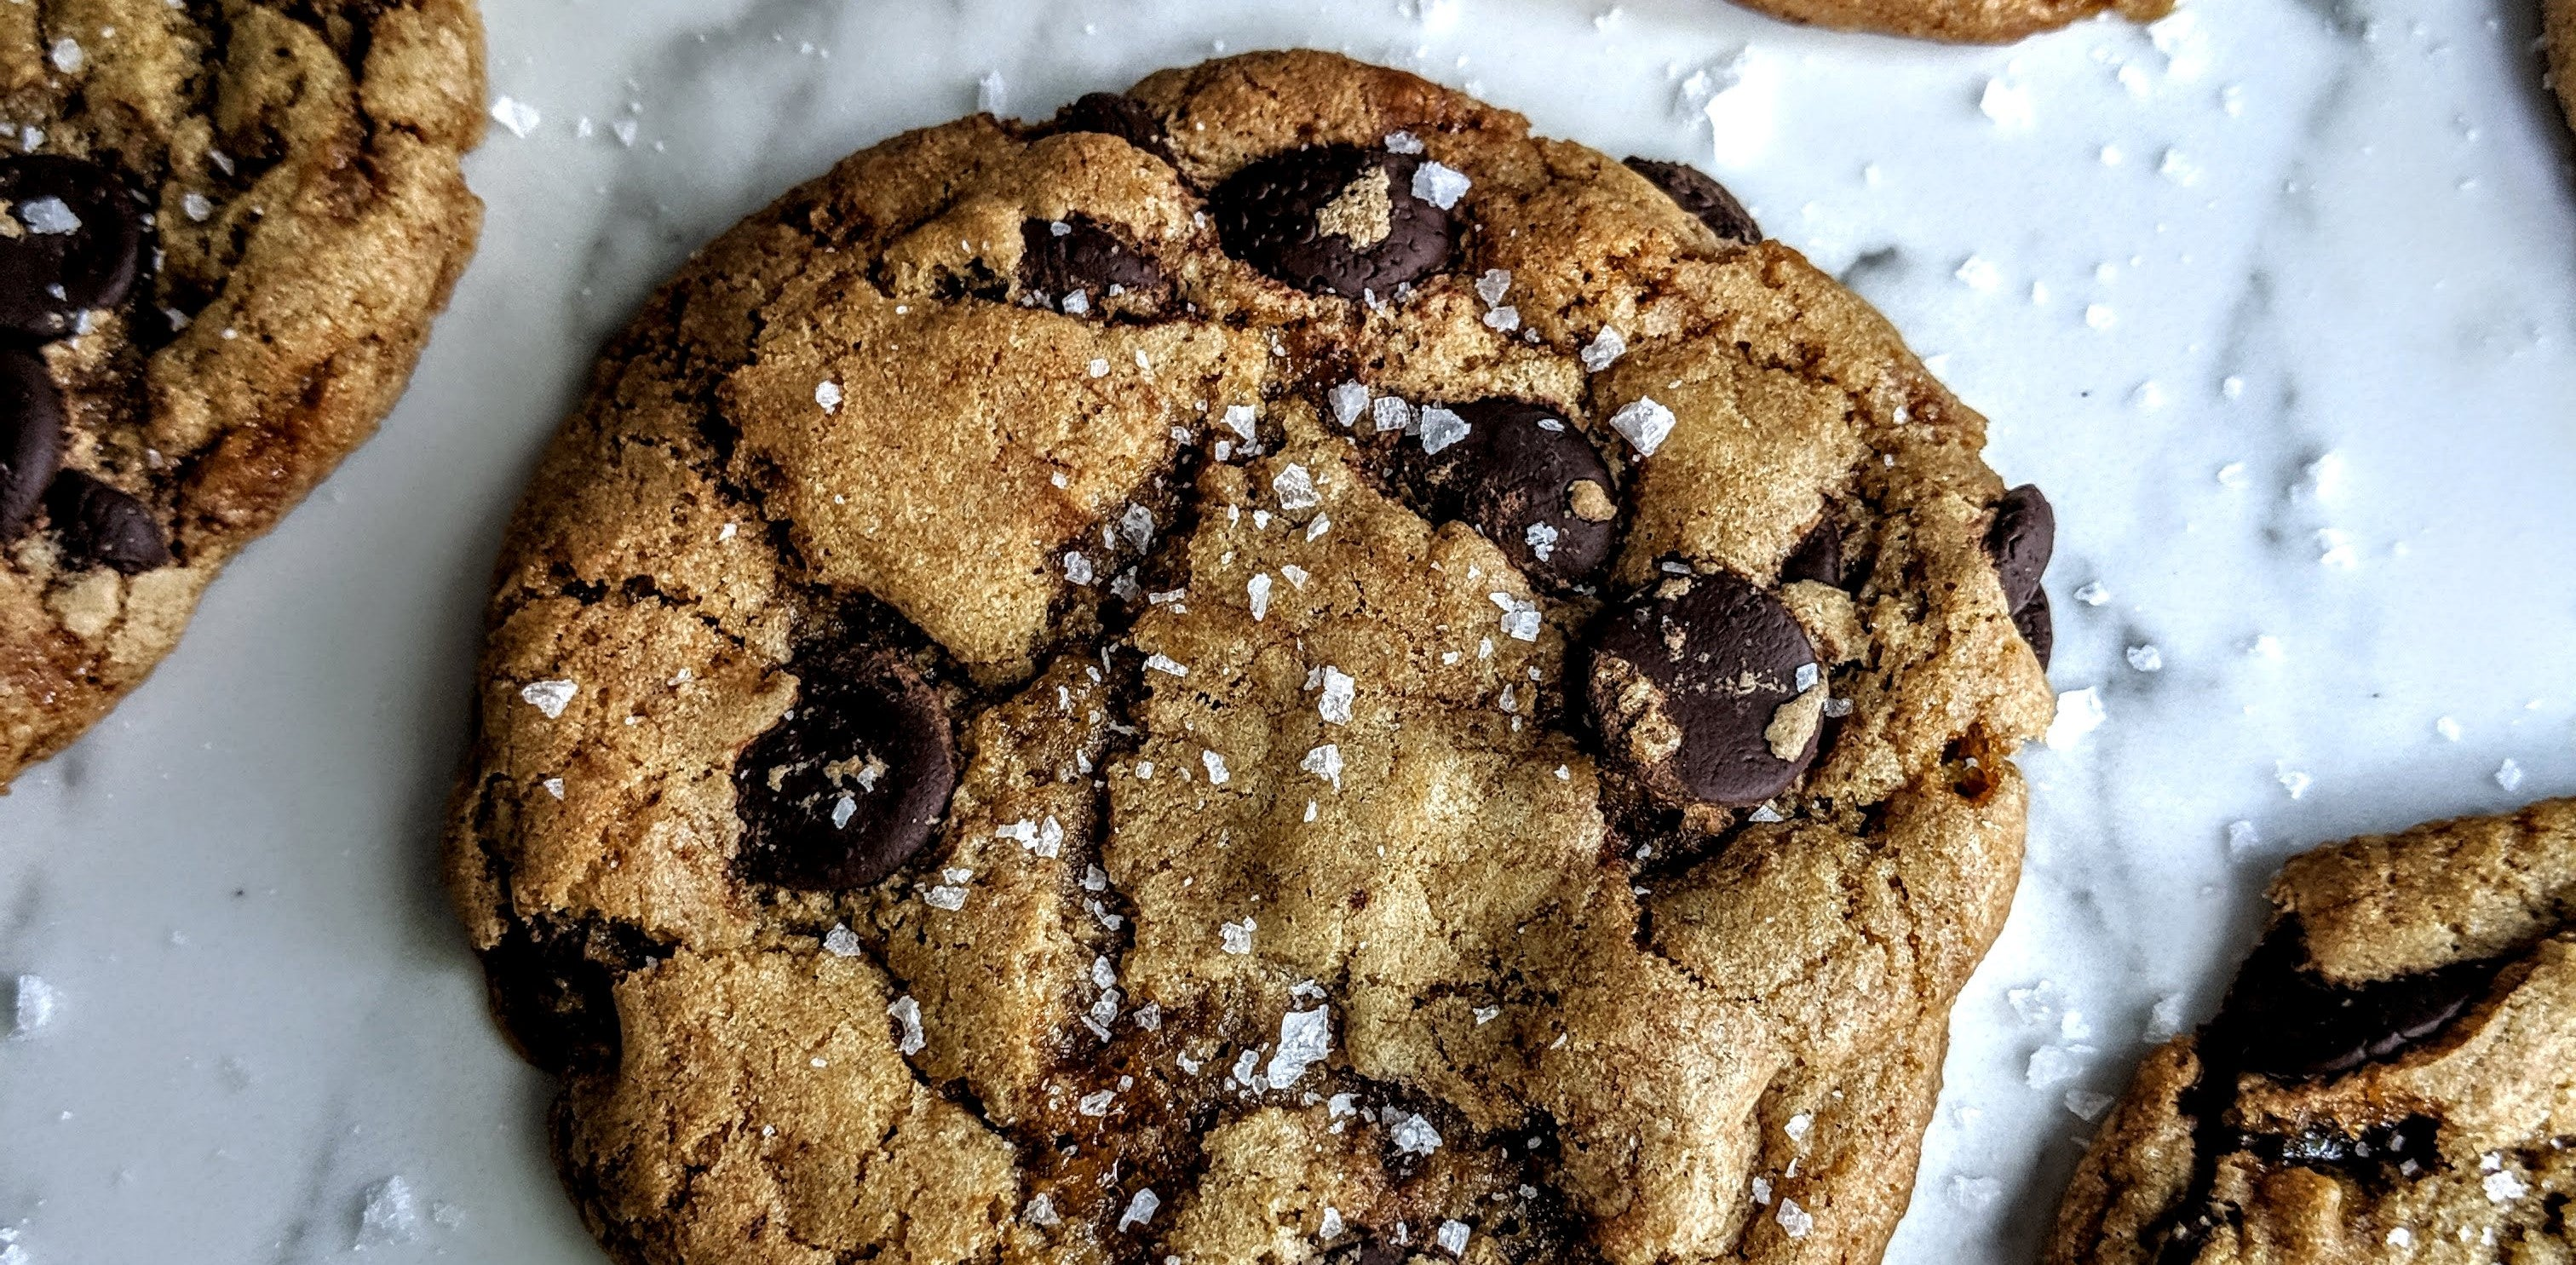 Brown-Buttered-Salted-Caramel-Chocolate-Chip-Cookies-4.jpg